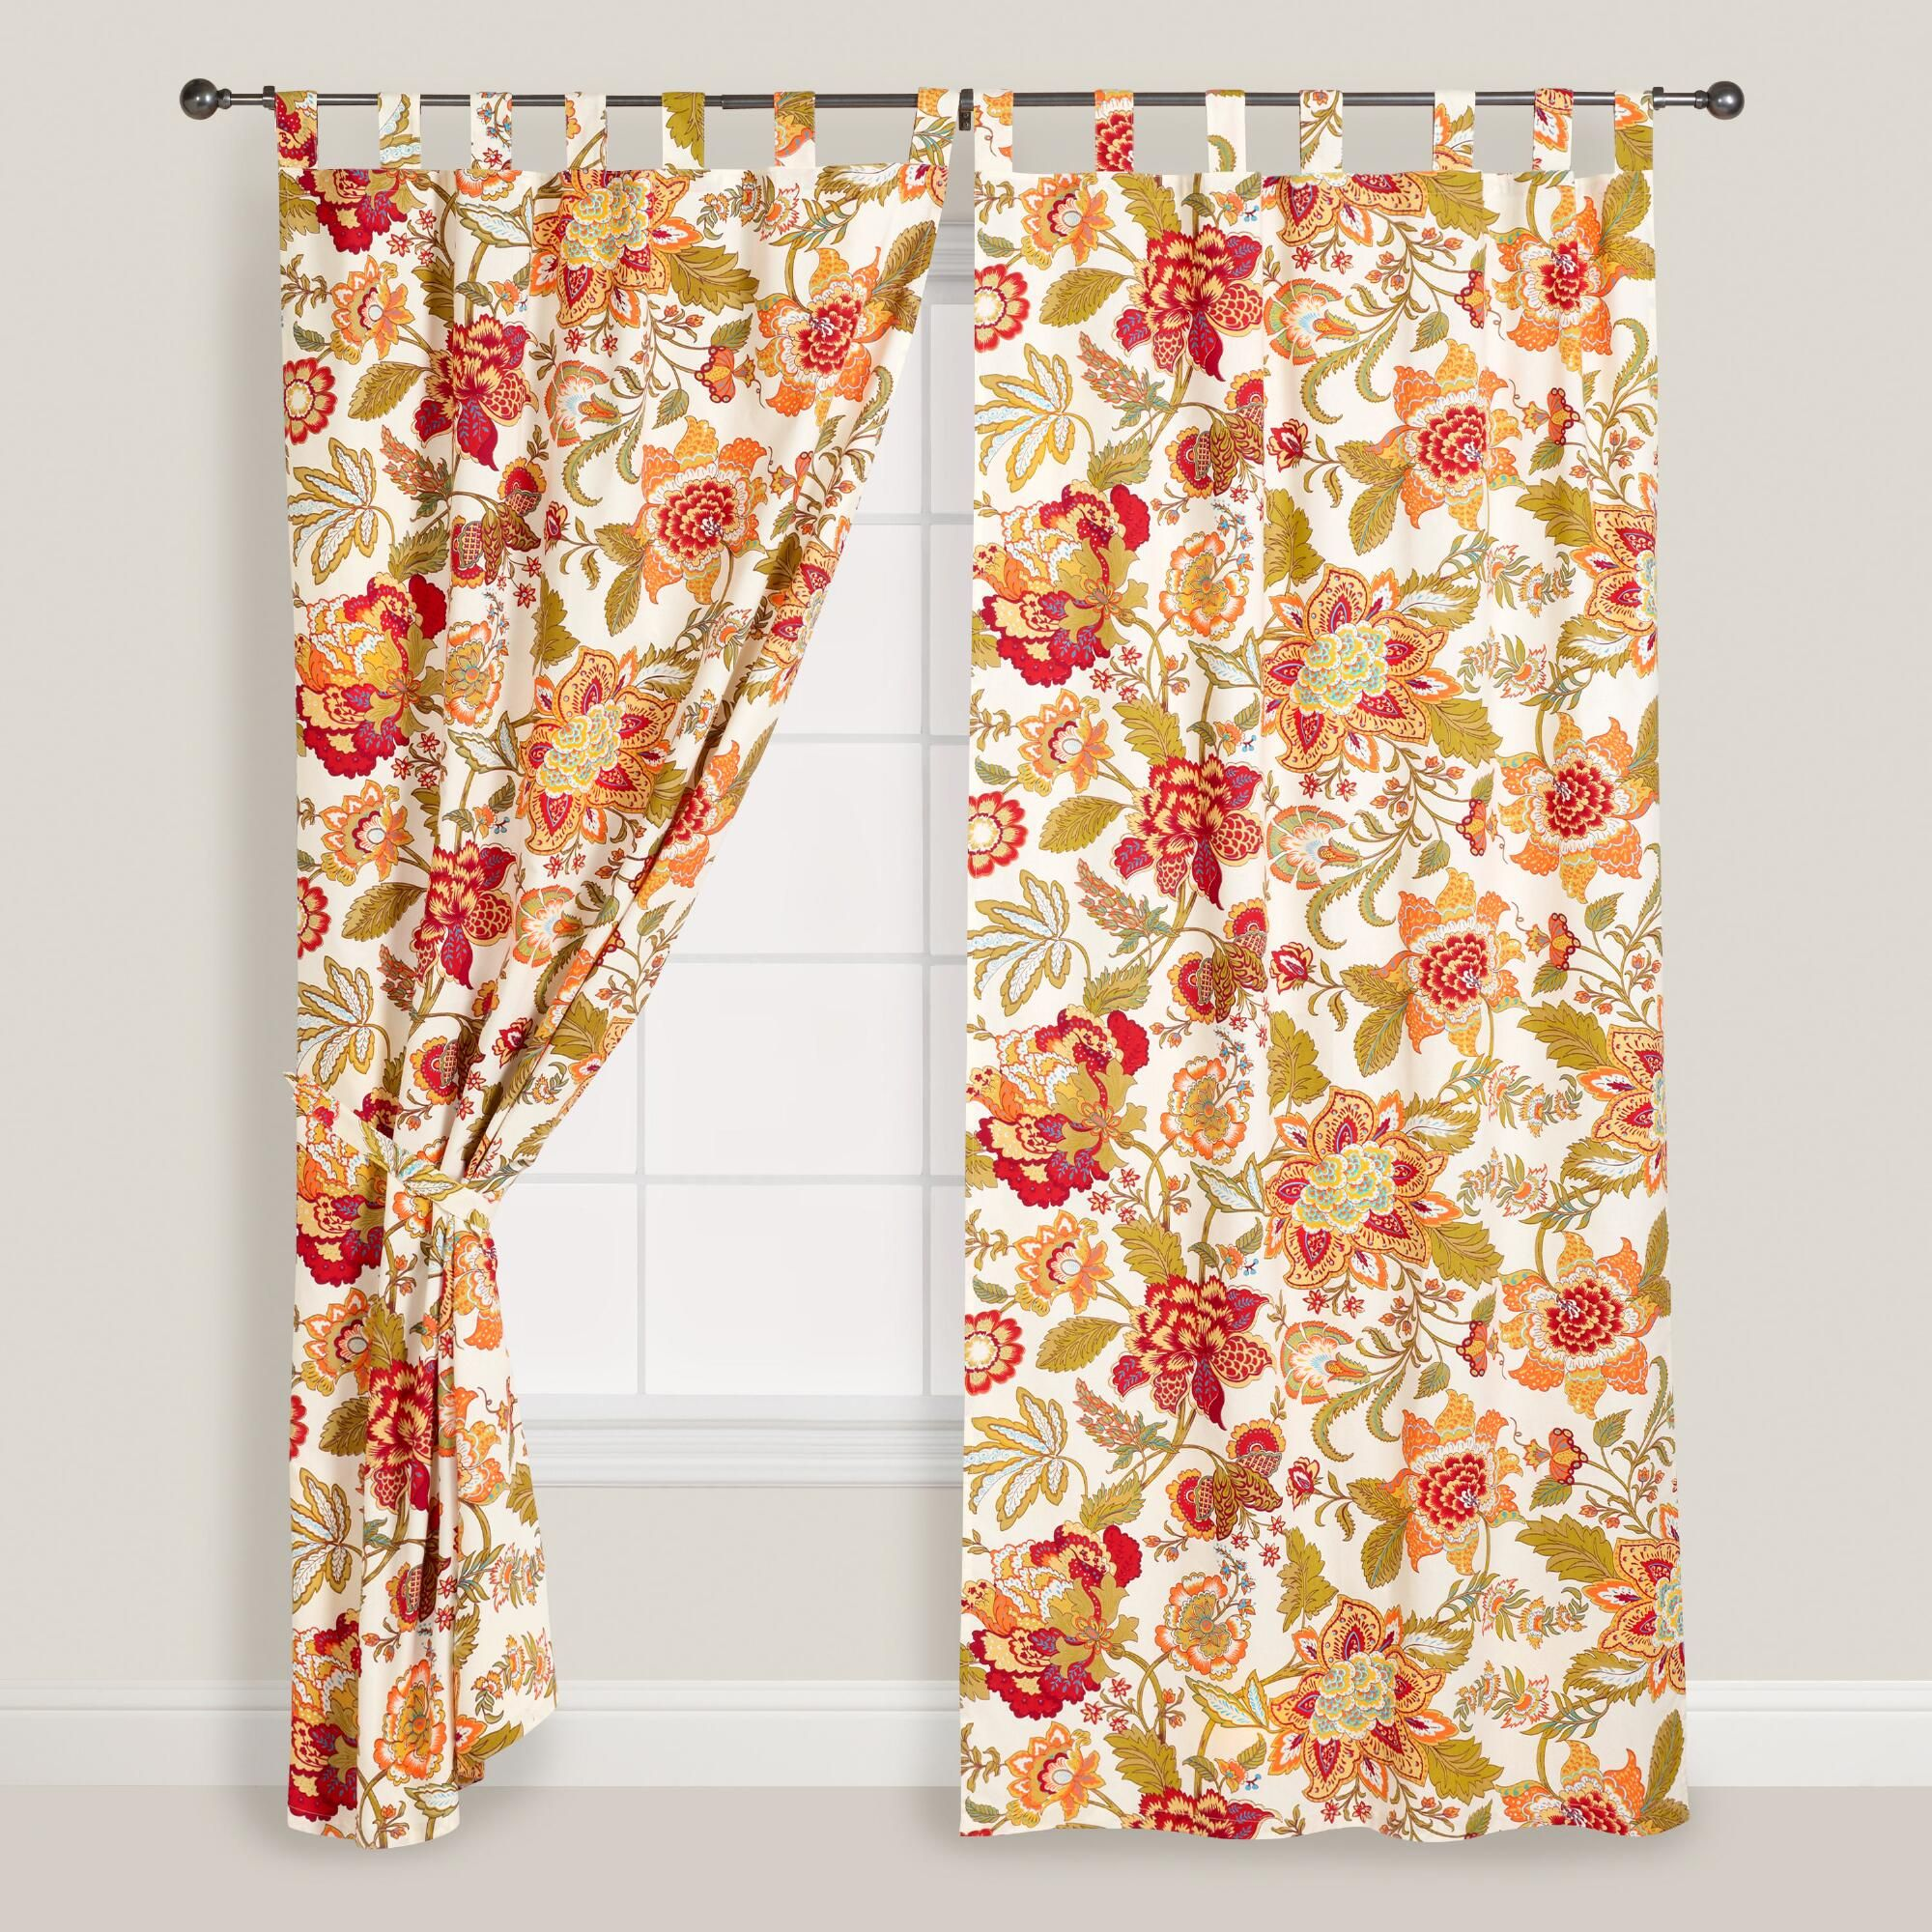 Floral Kavita Cotton Tab Top Curtain Dining Room